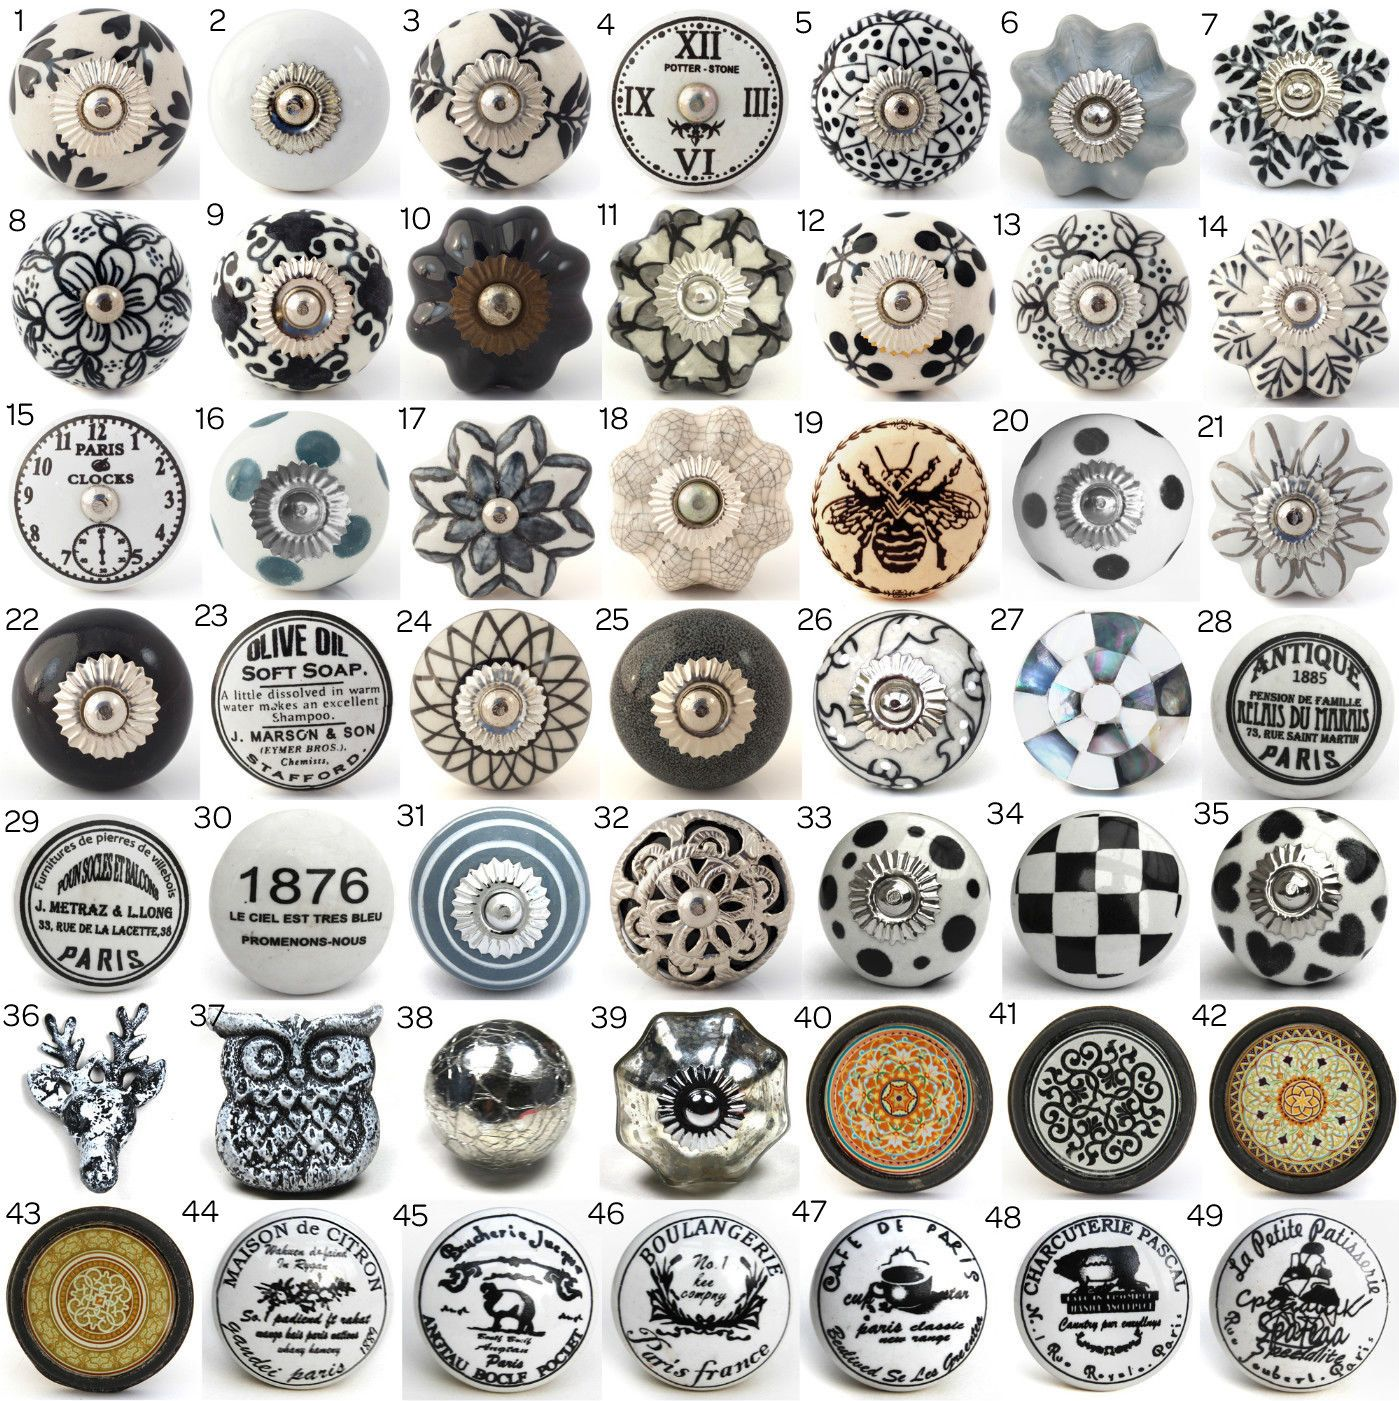 vintage ceramic knobs, ornamental door knobs with various black